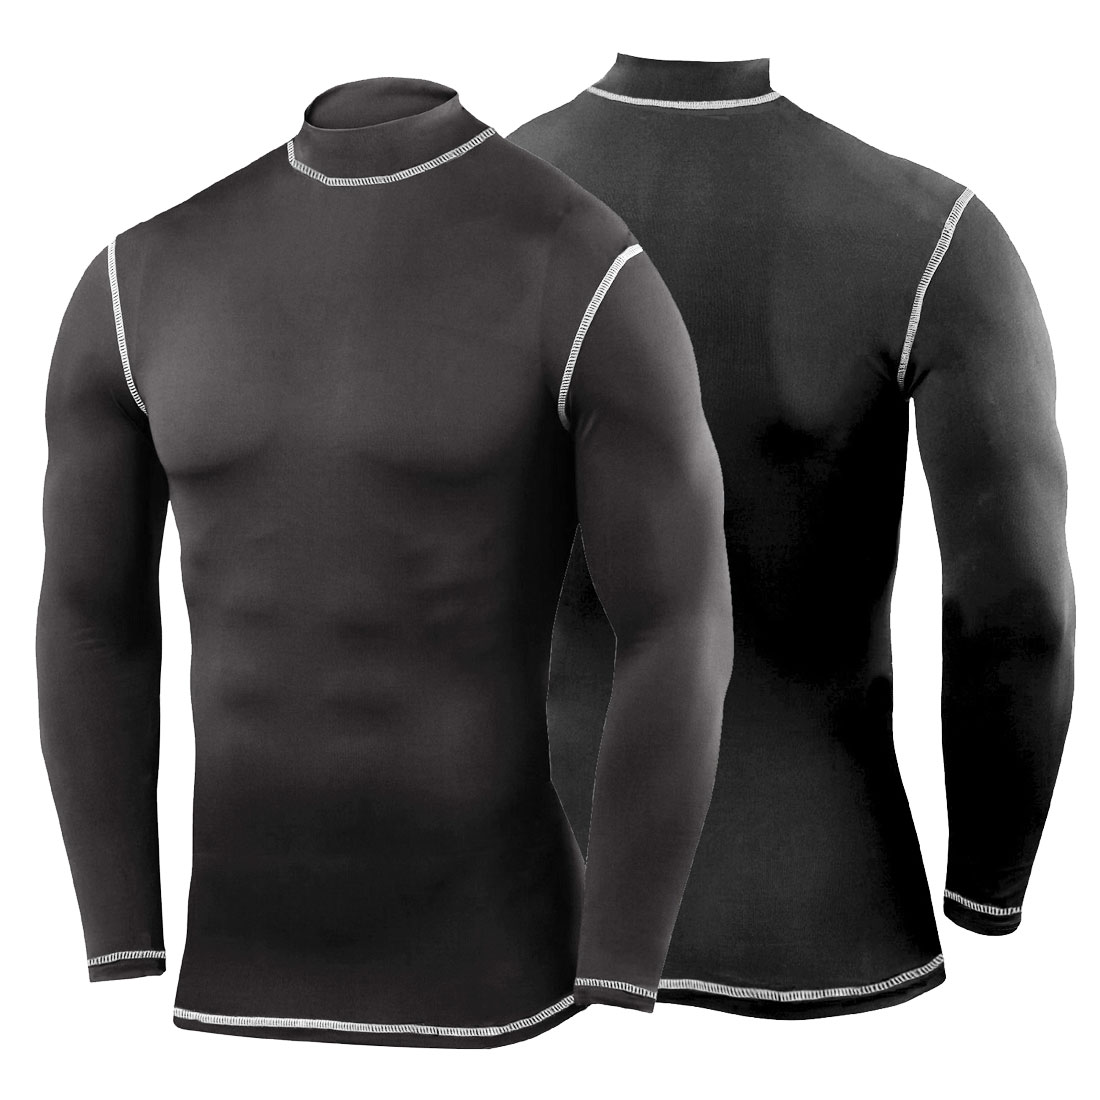 Black t shirt sports - Mens Compression Armour Base Layer Skin Gym Shirts